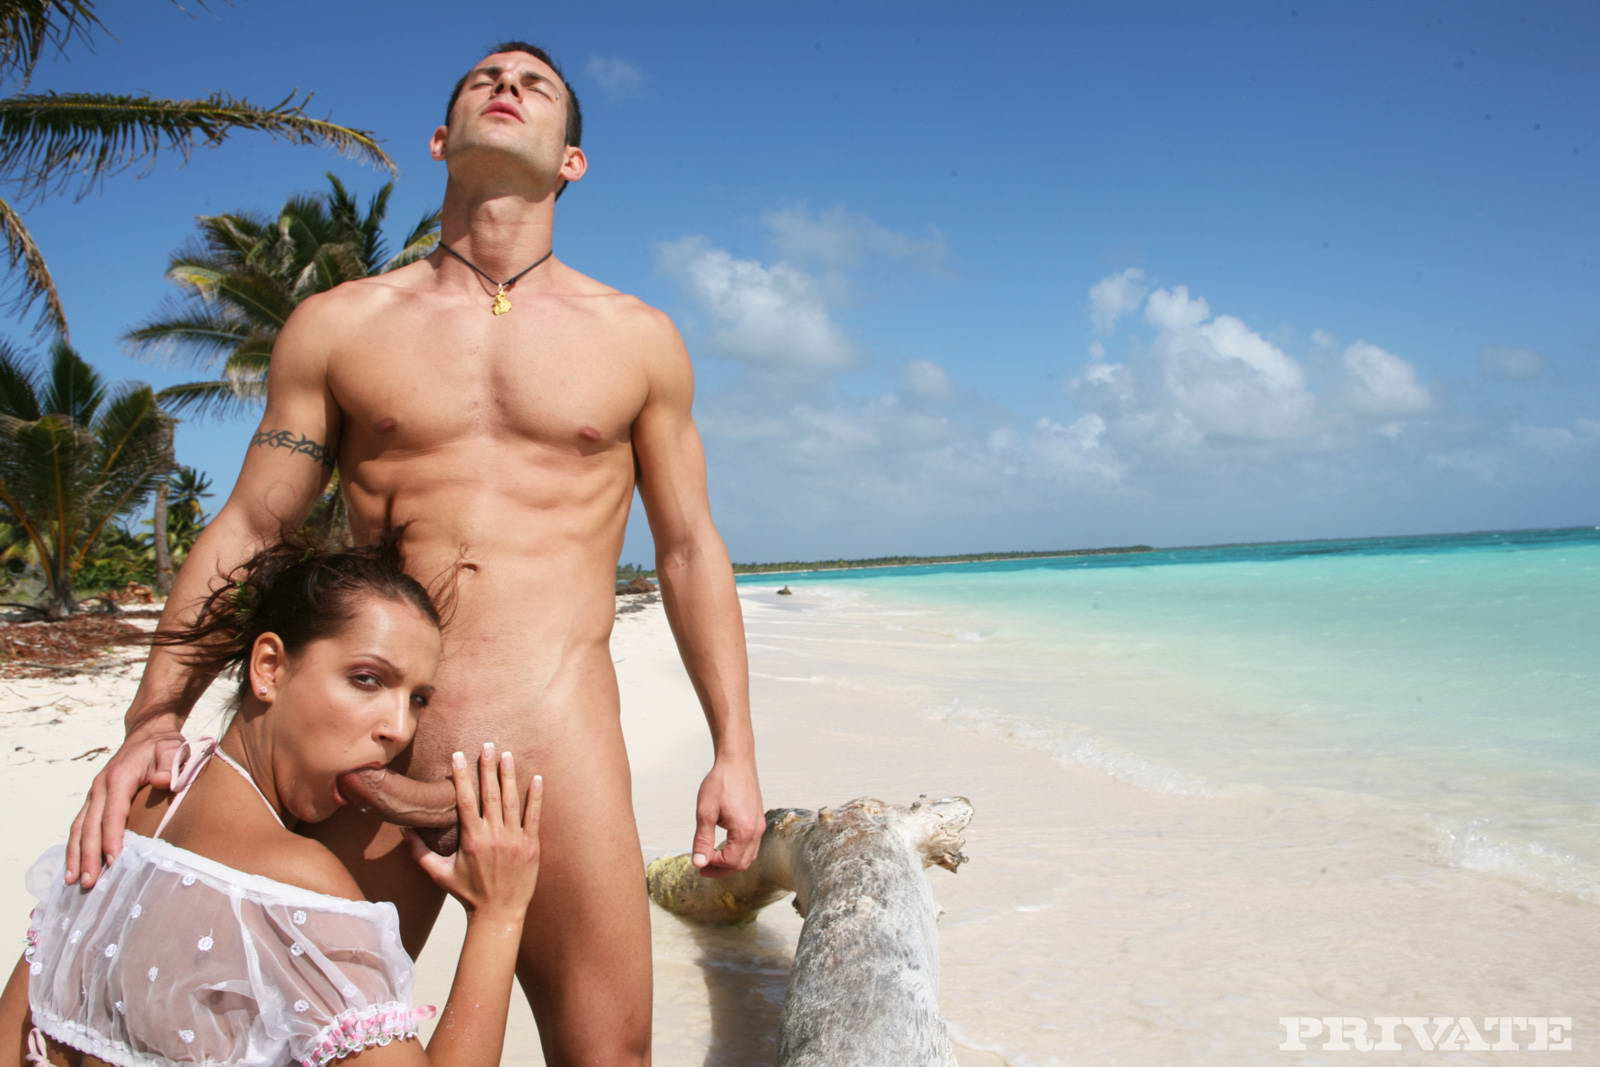 sex on the beach porn